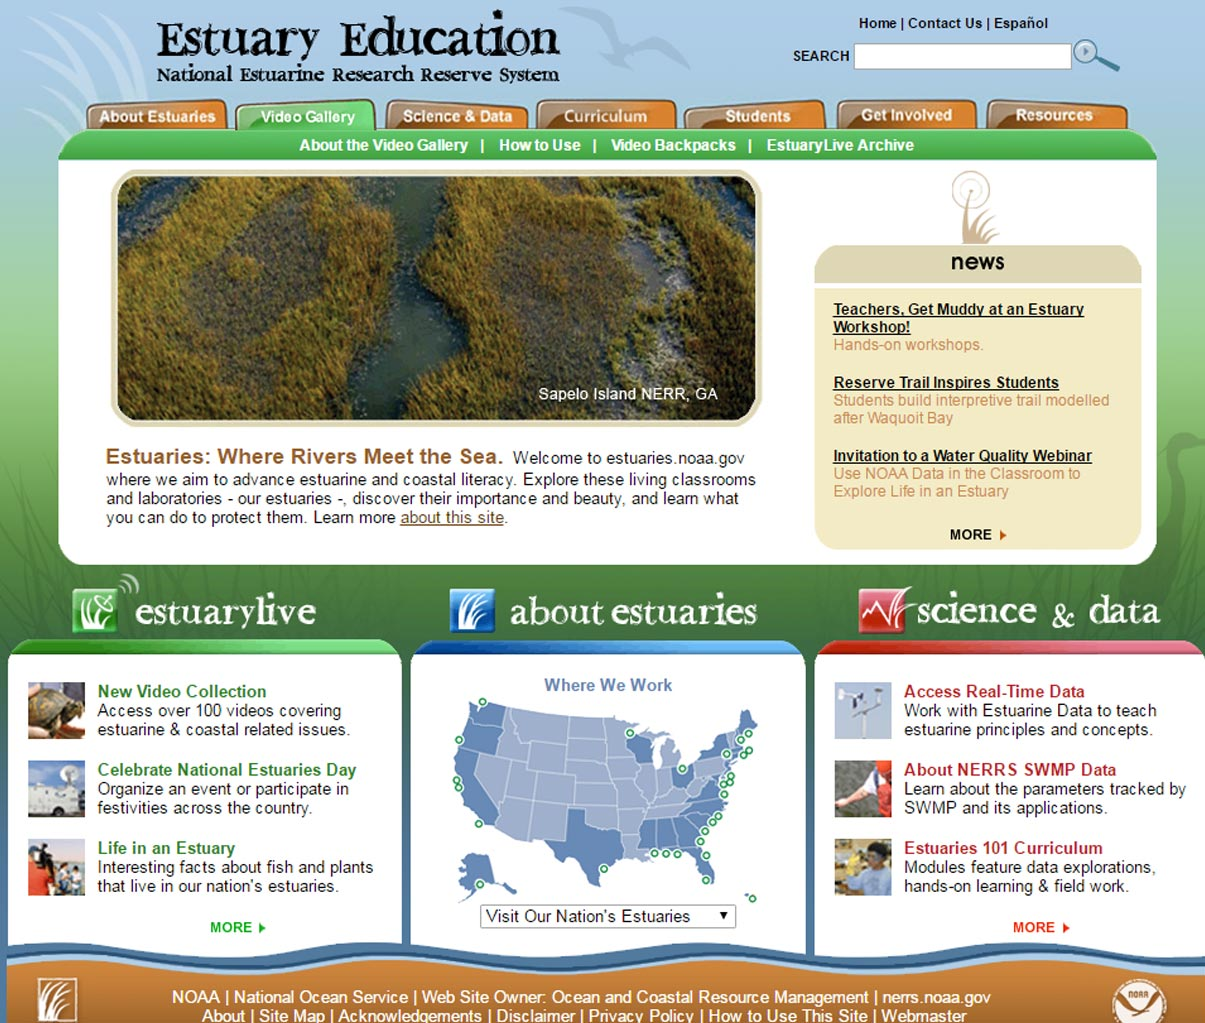 Screenshot of previous version of Estuary Education website